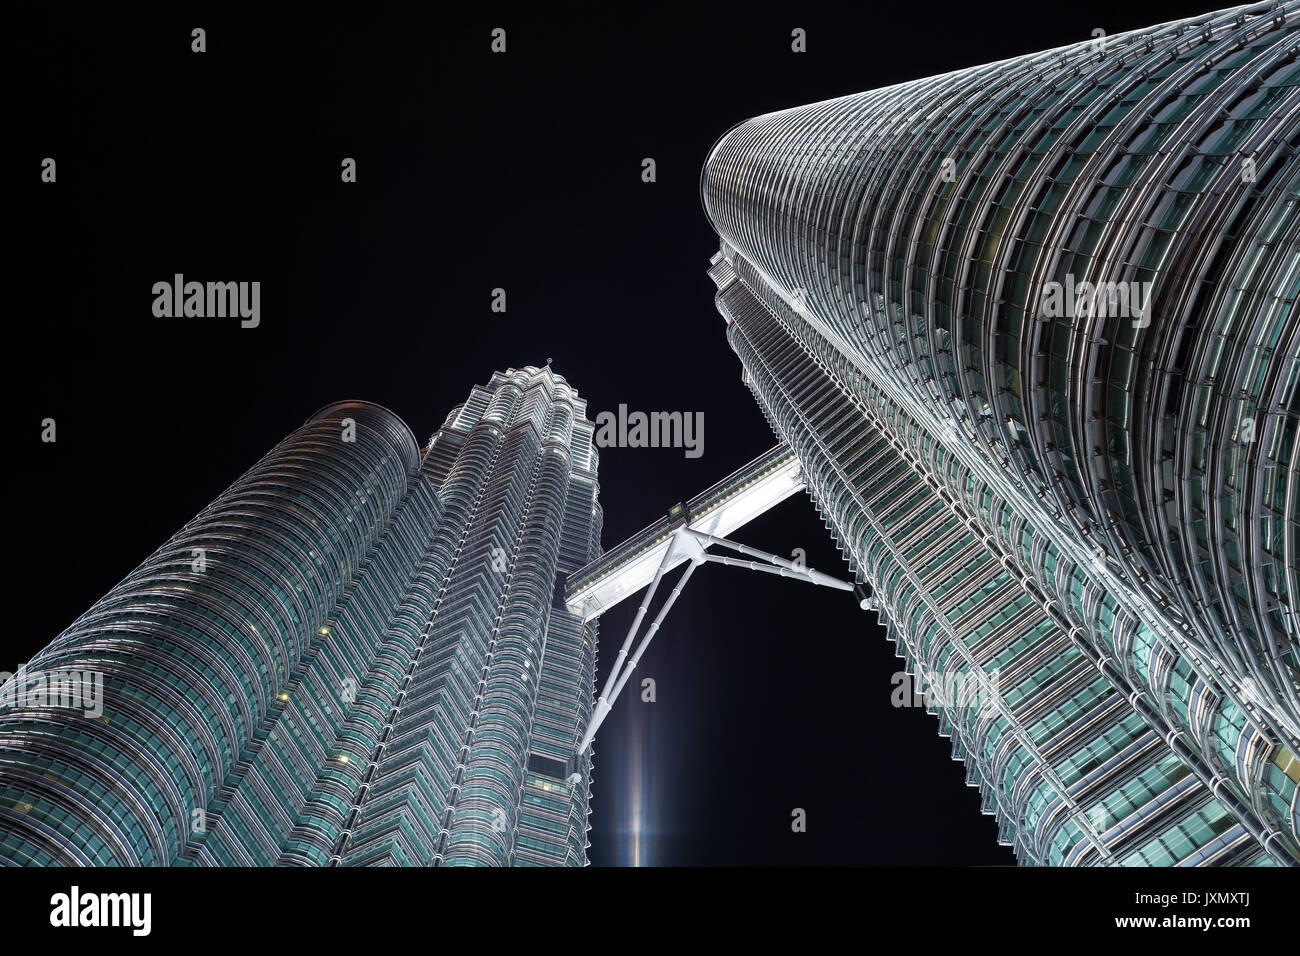 Close up perspective view from the bottom upwards on petronas towers close up perspective view from the bottom upwards on petronas towers kuala lumpur malaysia buycottarizona Gallery